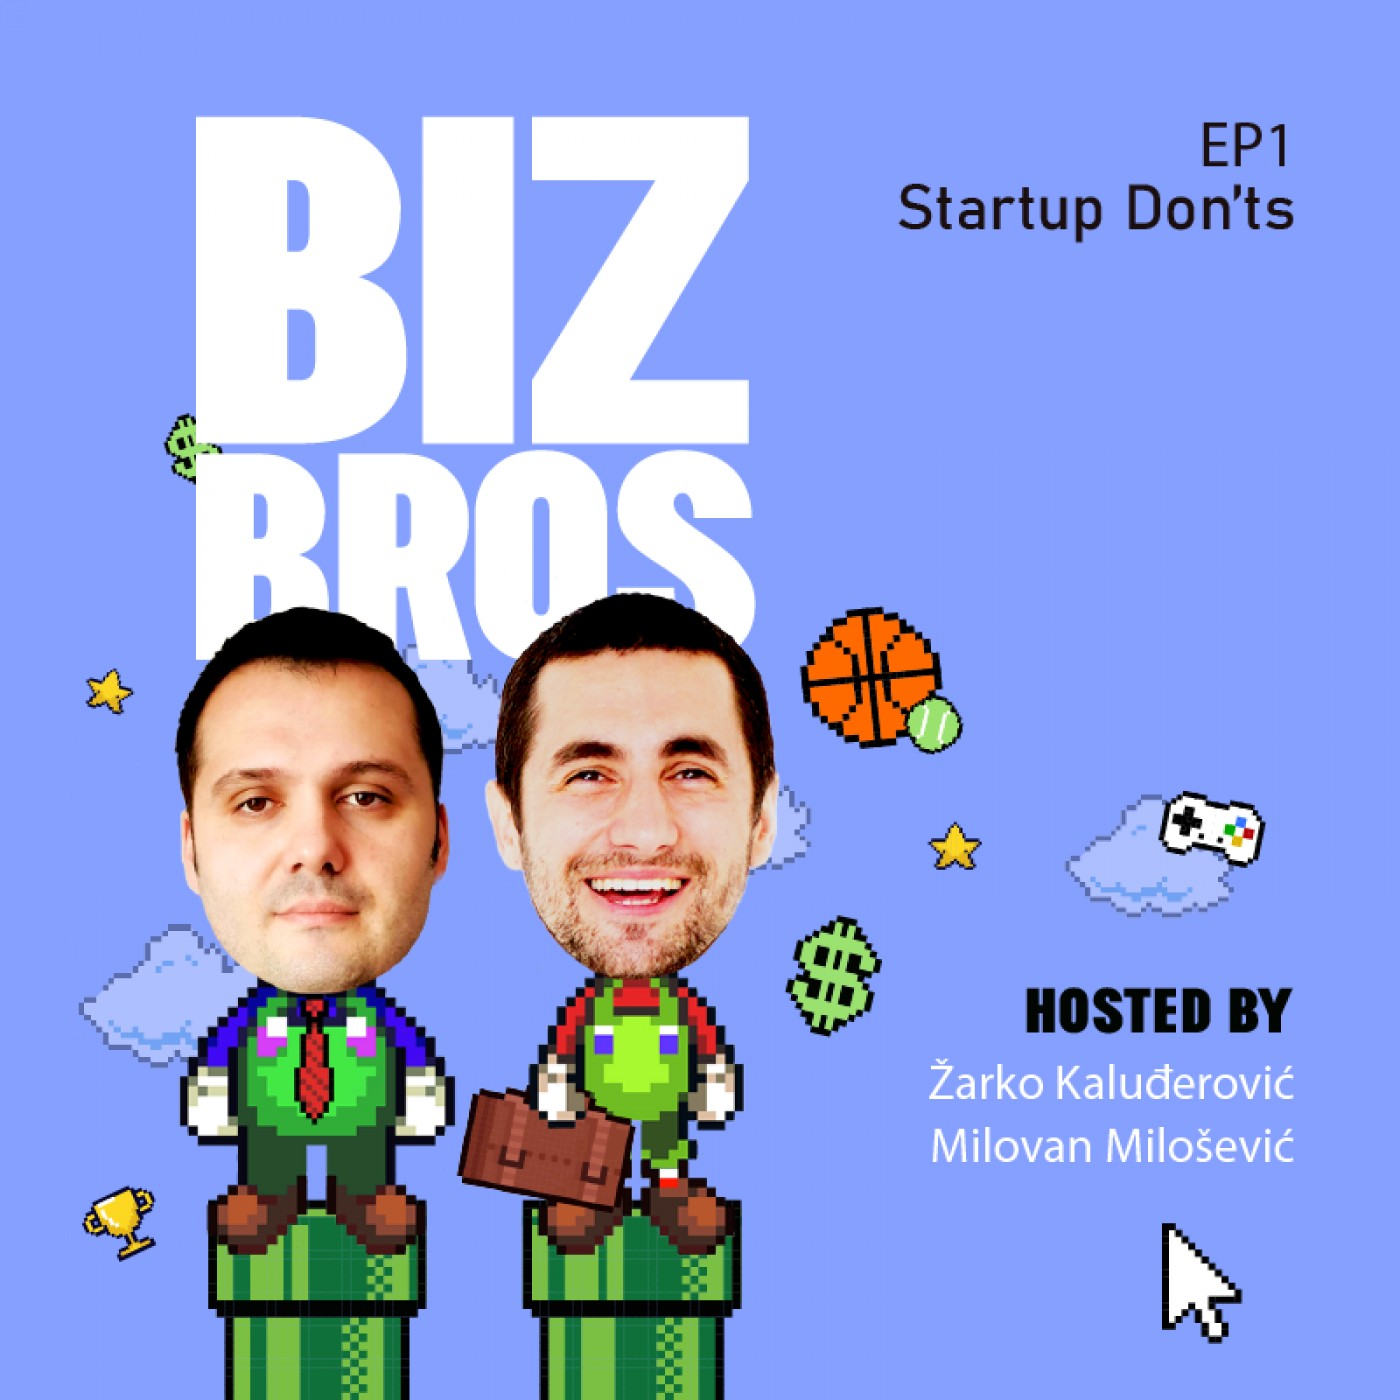 EP1 Startup Dont's